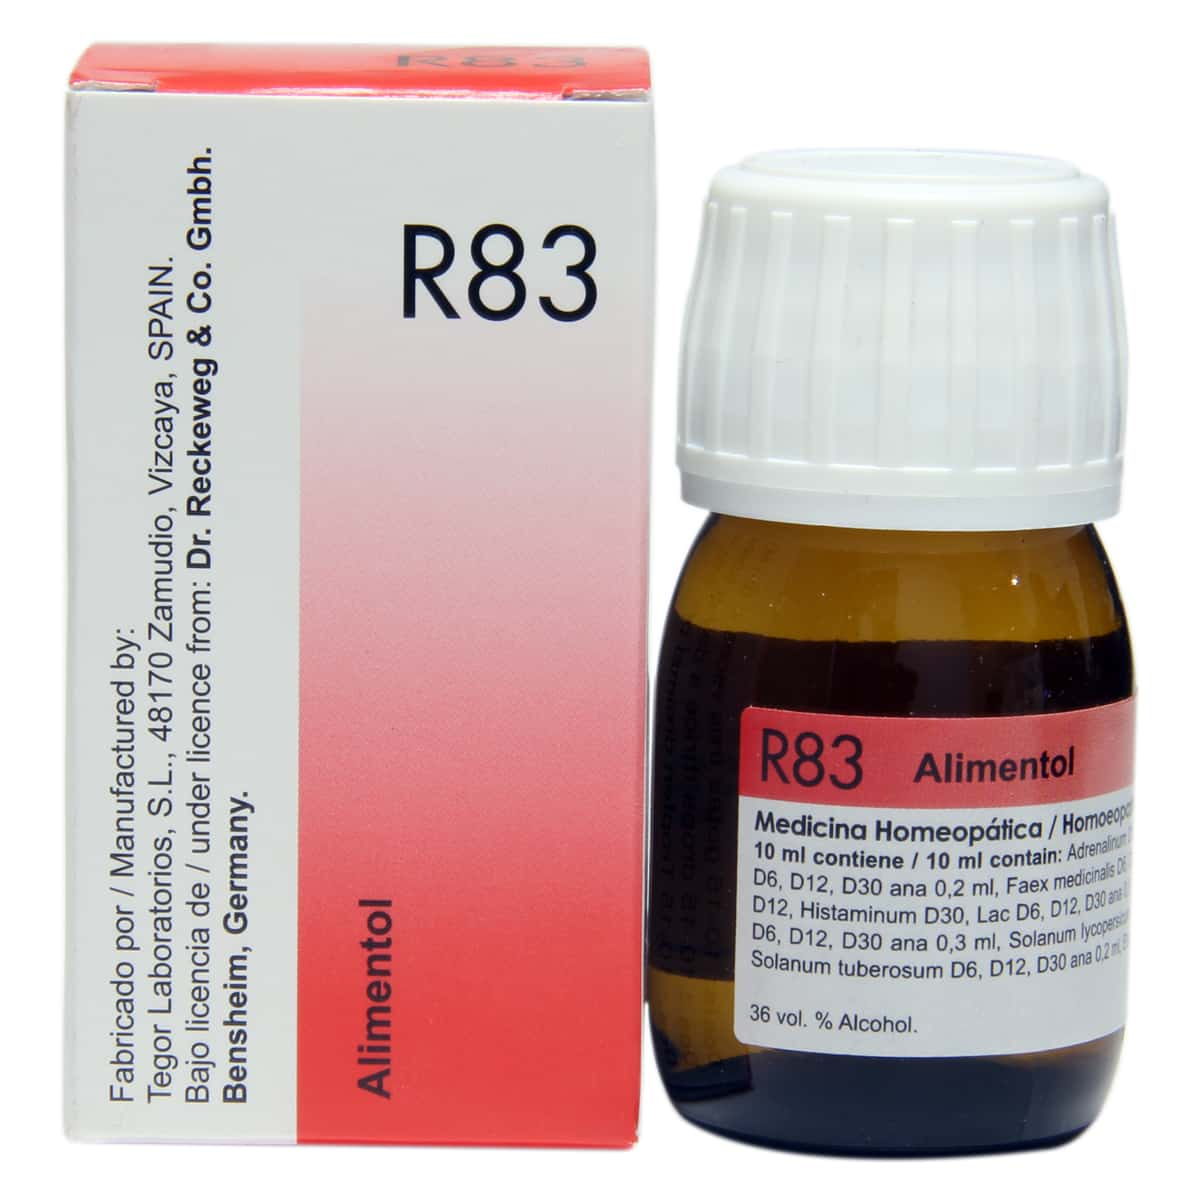 R83-Homeopathicology.com